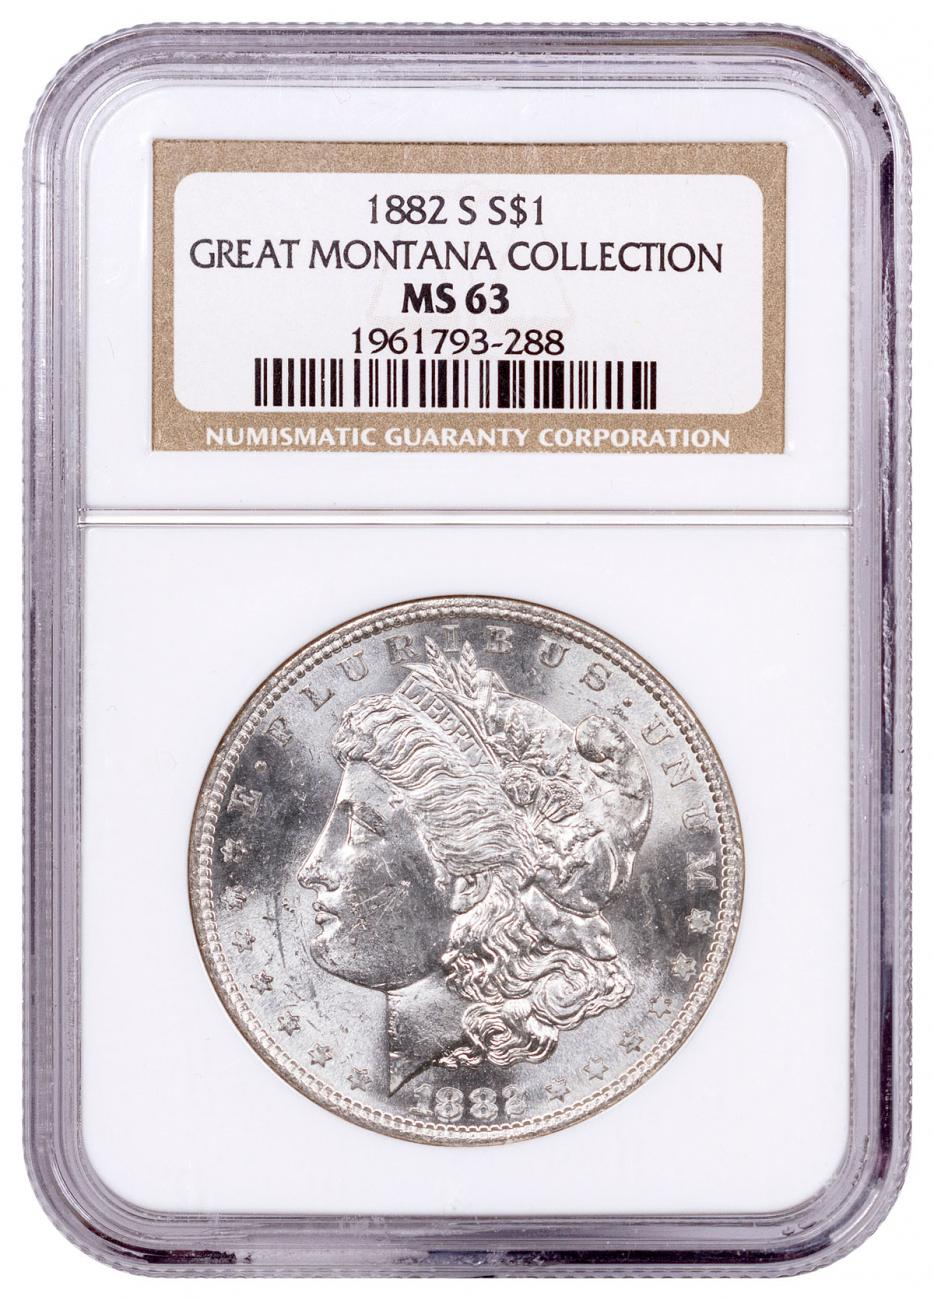 1882-S Morgan Silver Dollar From the Great Montana Collection NGC MS63